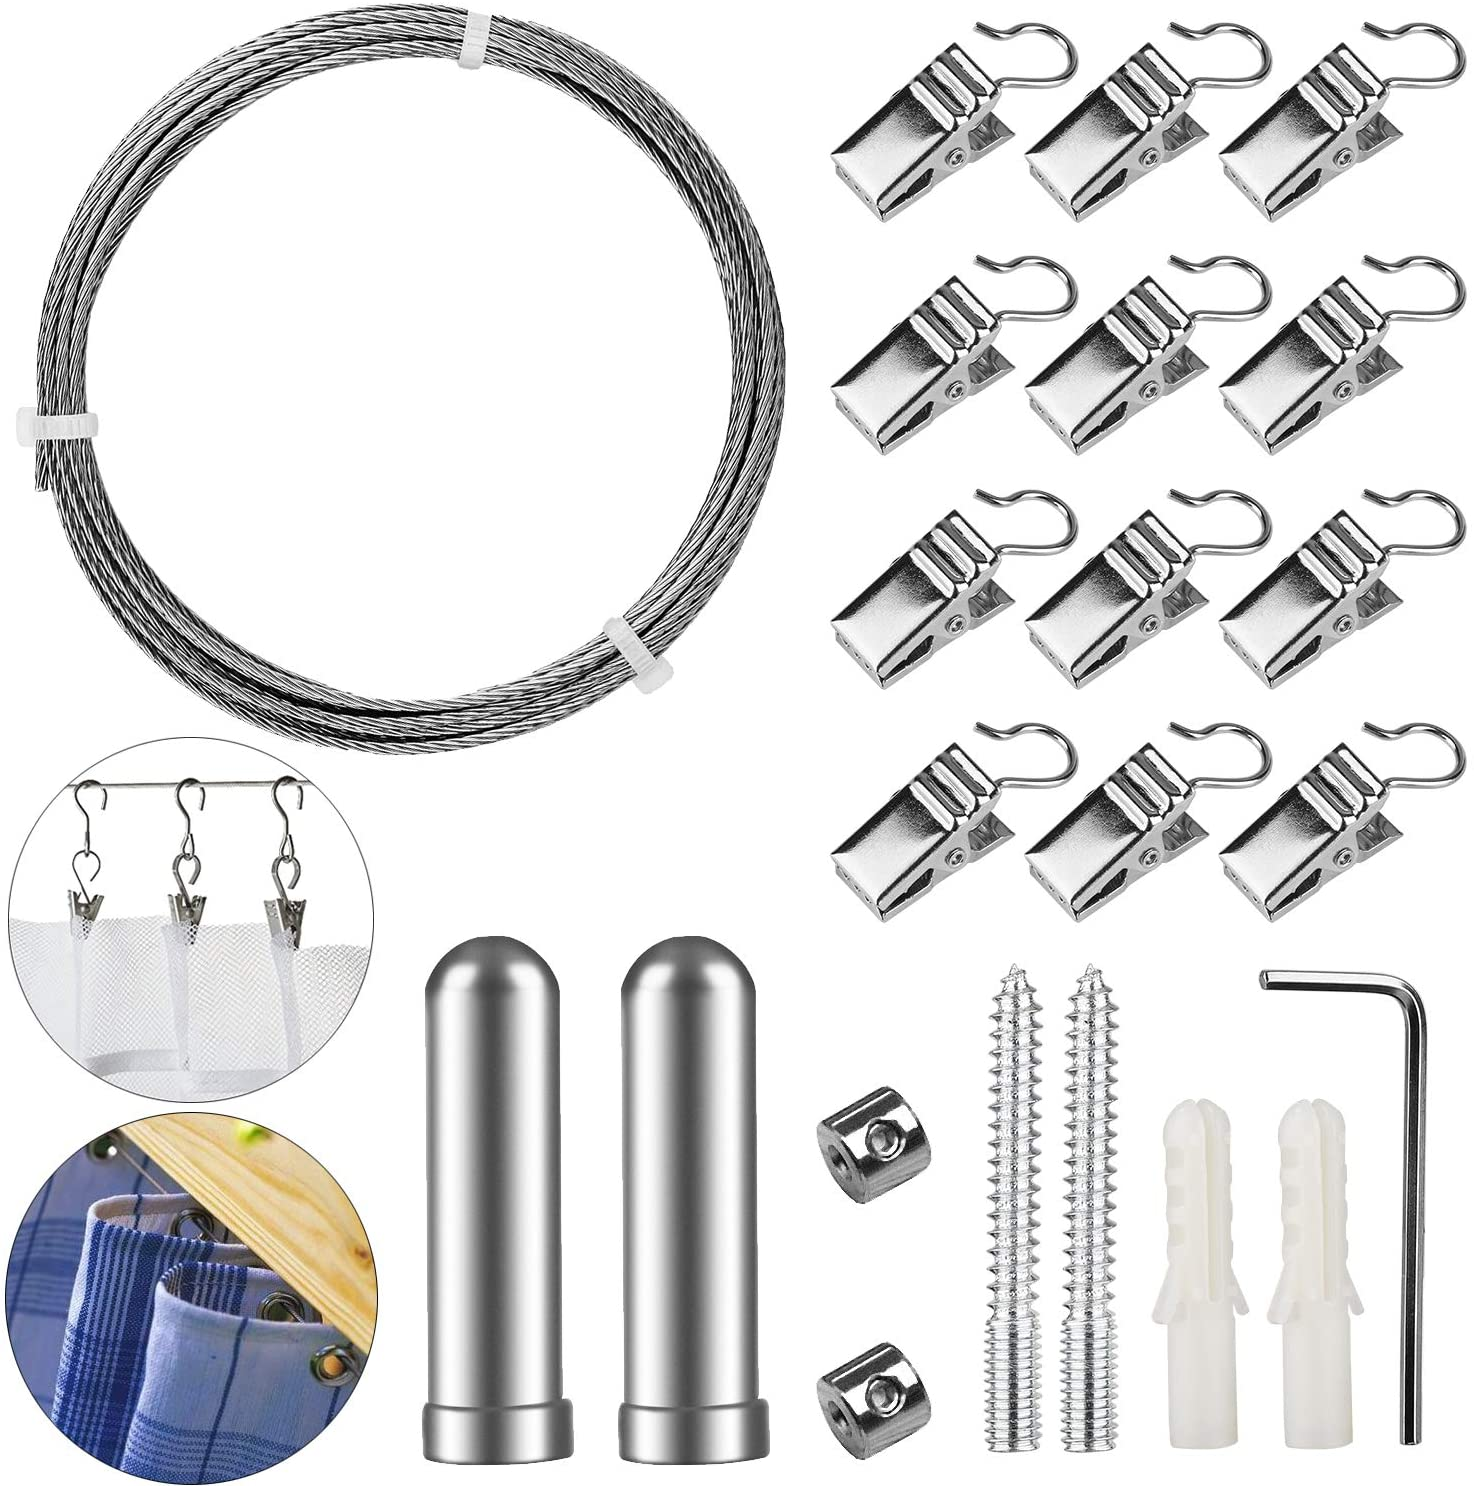 Pinowu Stainless Steel Curtain Drape Wire Rod Set with 12 Clips - Picture Hanging Wire Clothesline Wire Multi-Purpose Set Hang Photos, Notes, Art (3 Meter)